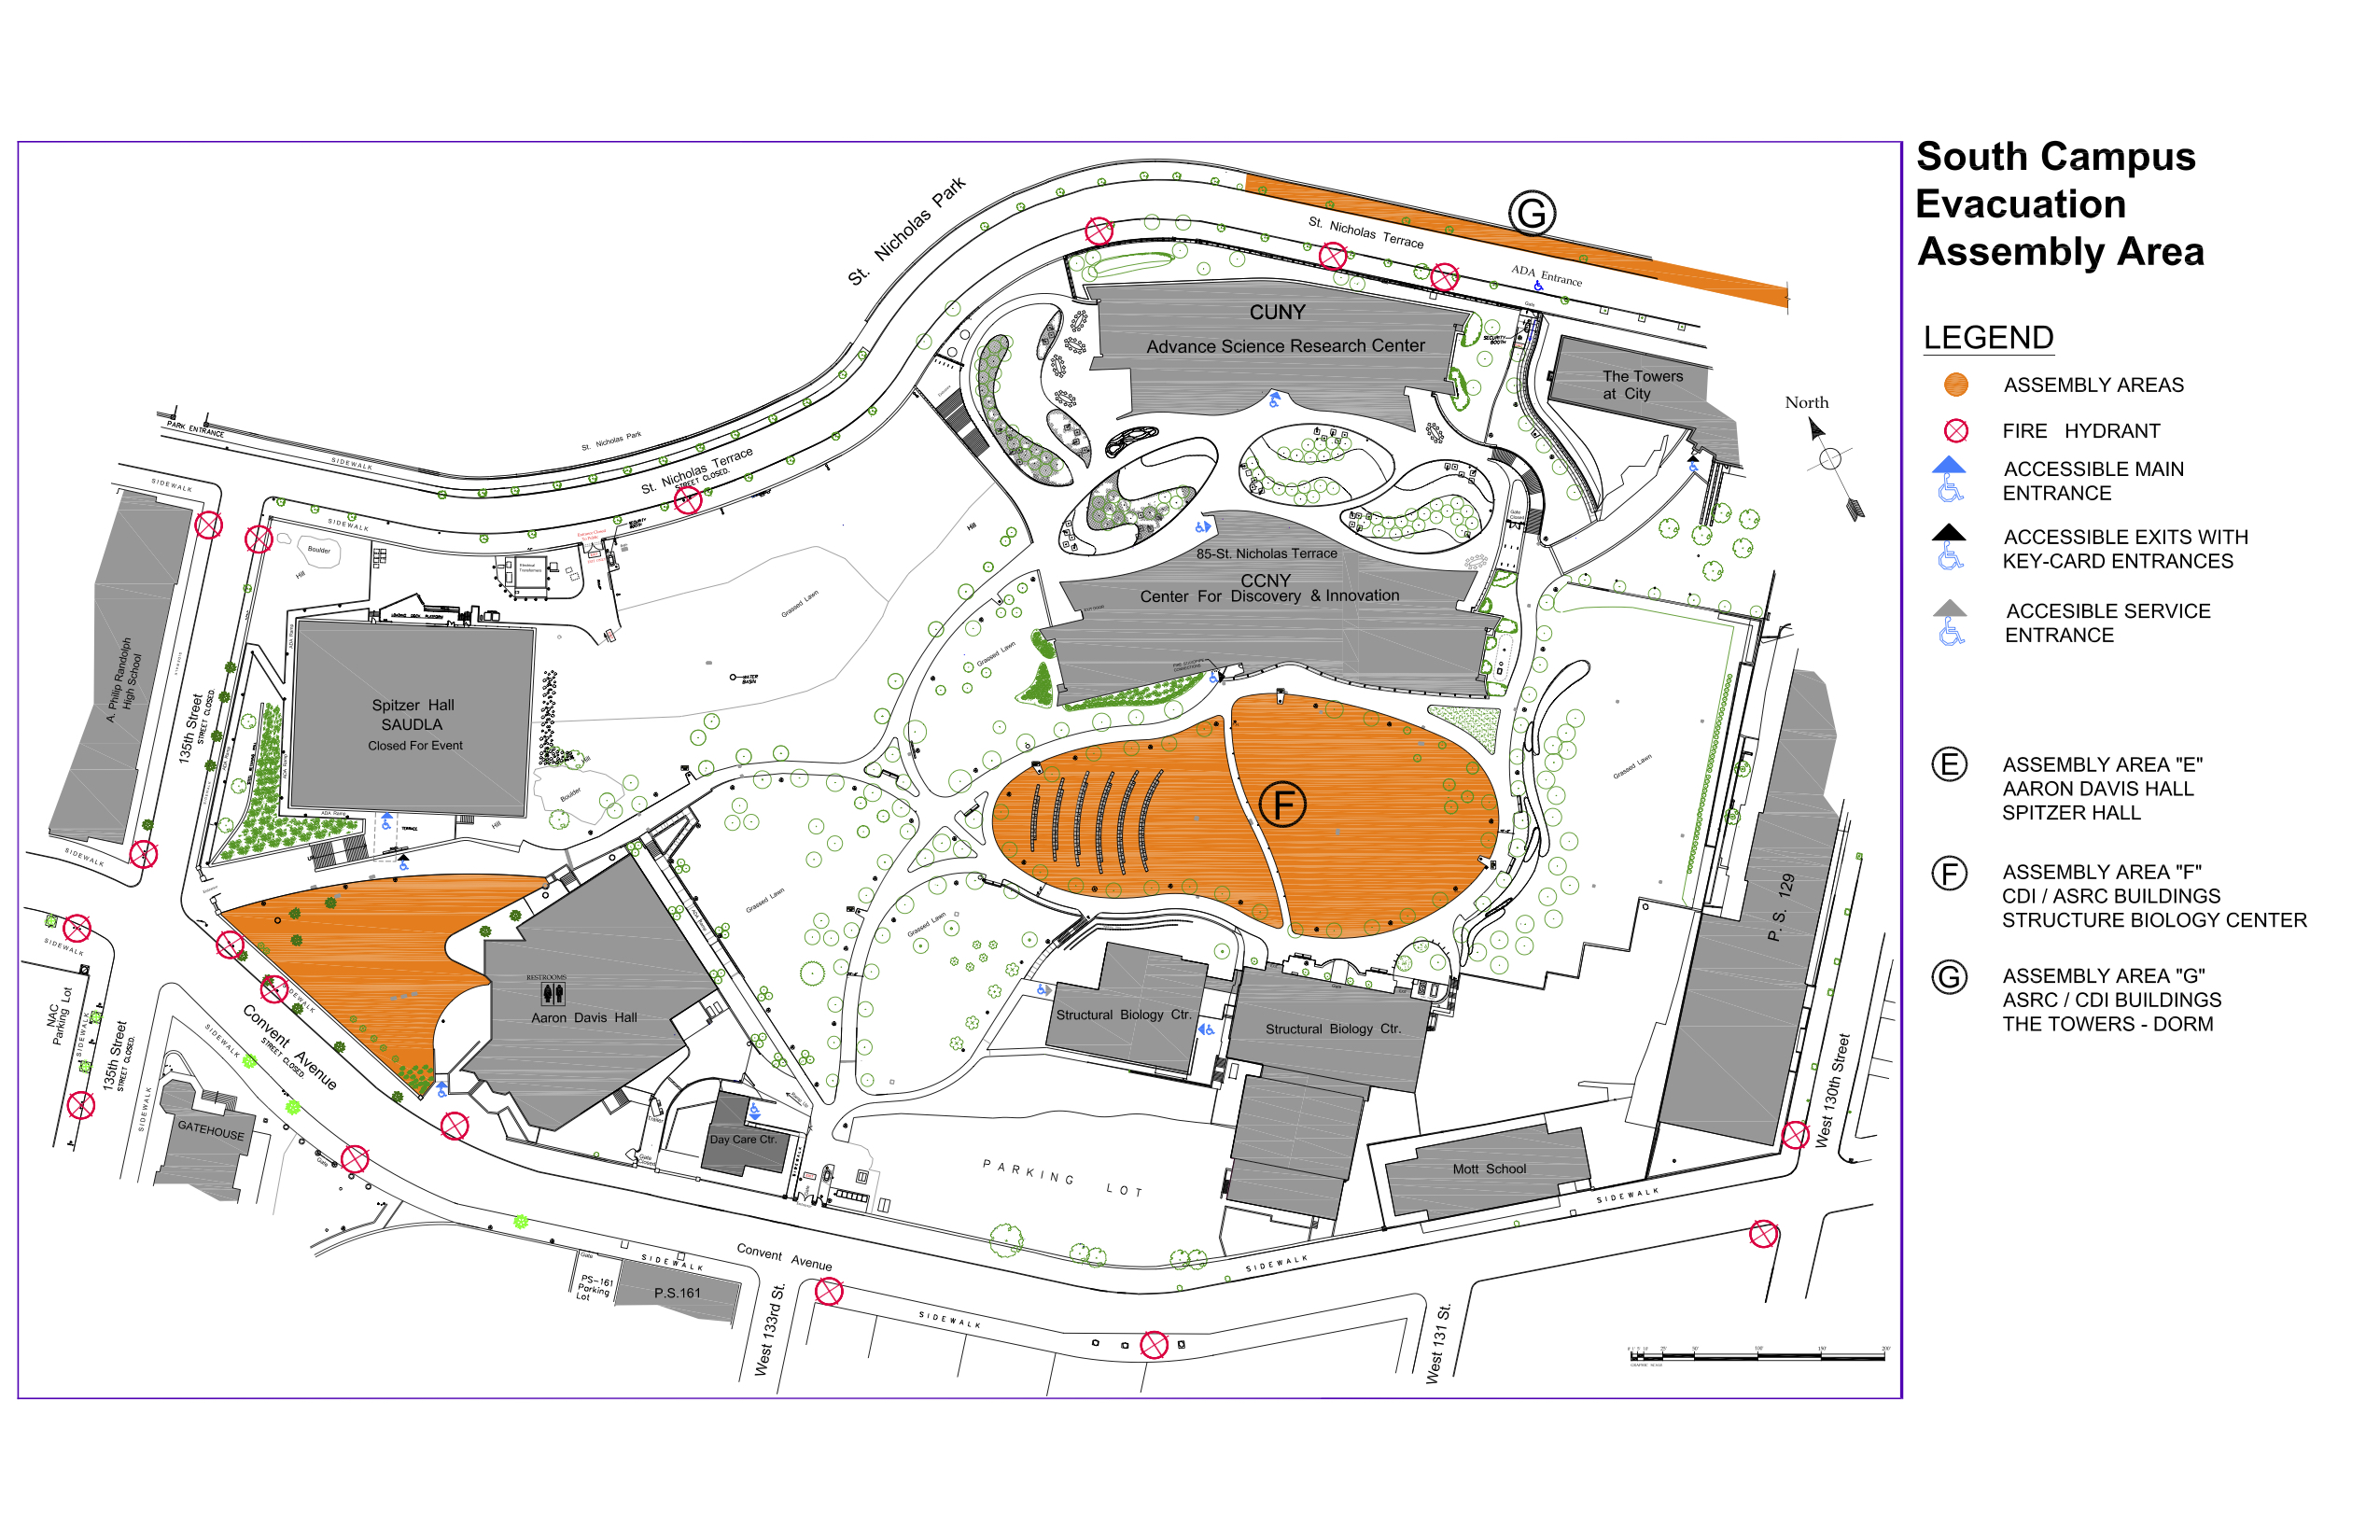 Campus Map - Assembly Areas - South Campus